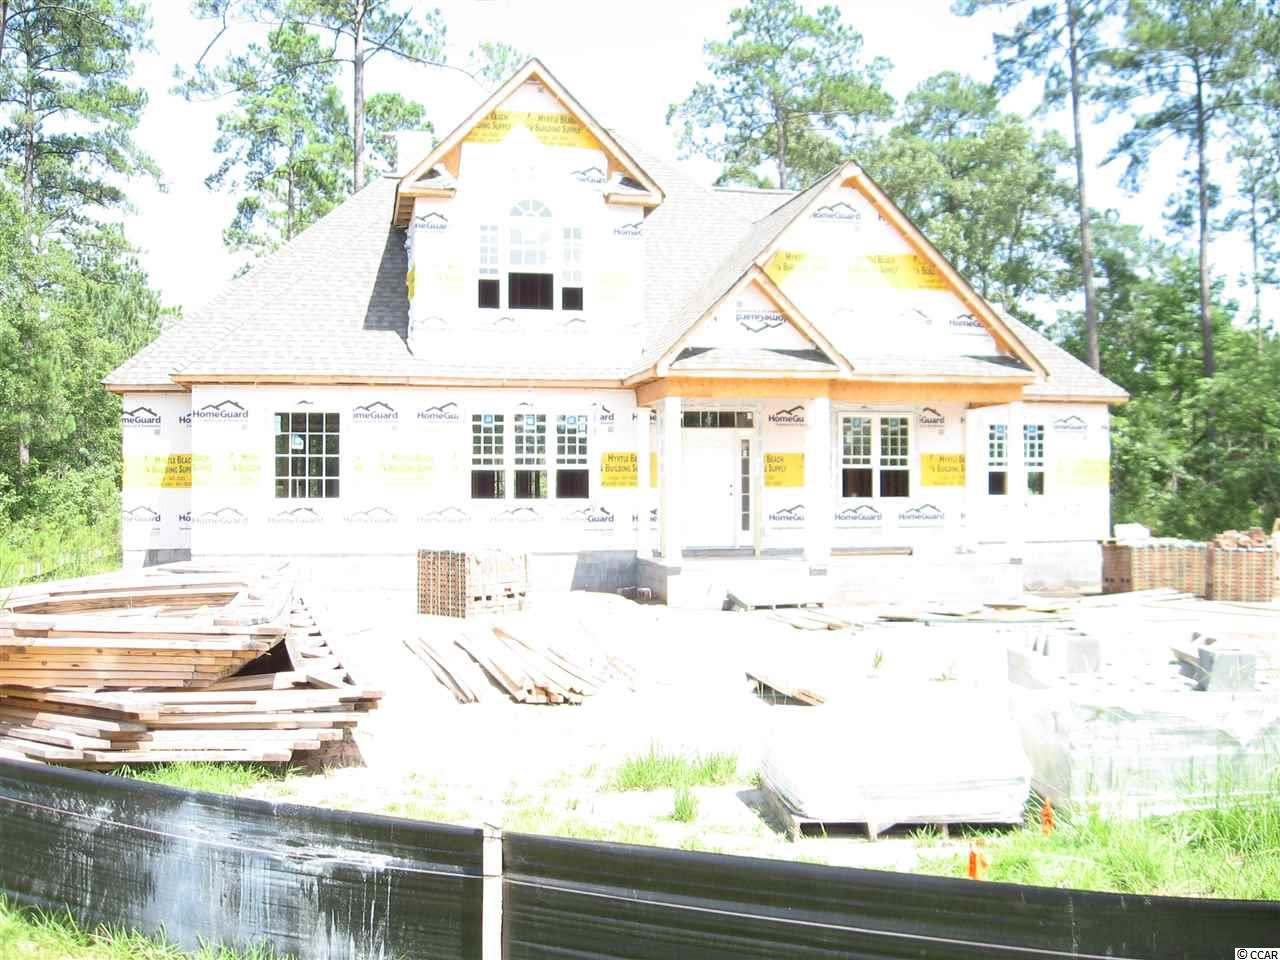 Single Family Home for Sale at 401 Cypress Wood Court 401 Cypress Wood Court Murrells Inlet, South Carolina 29576 United States